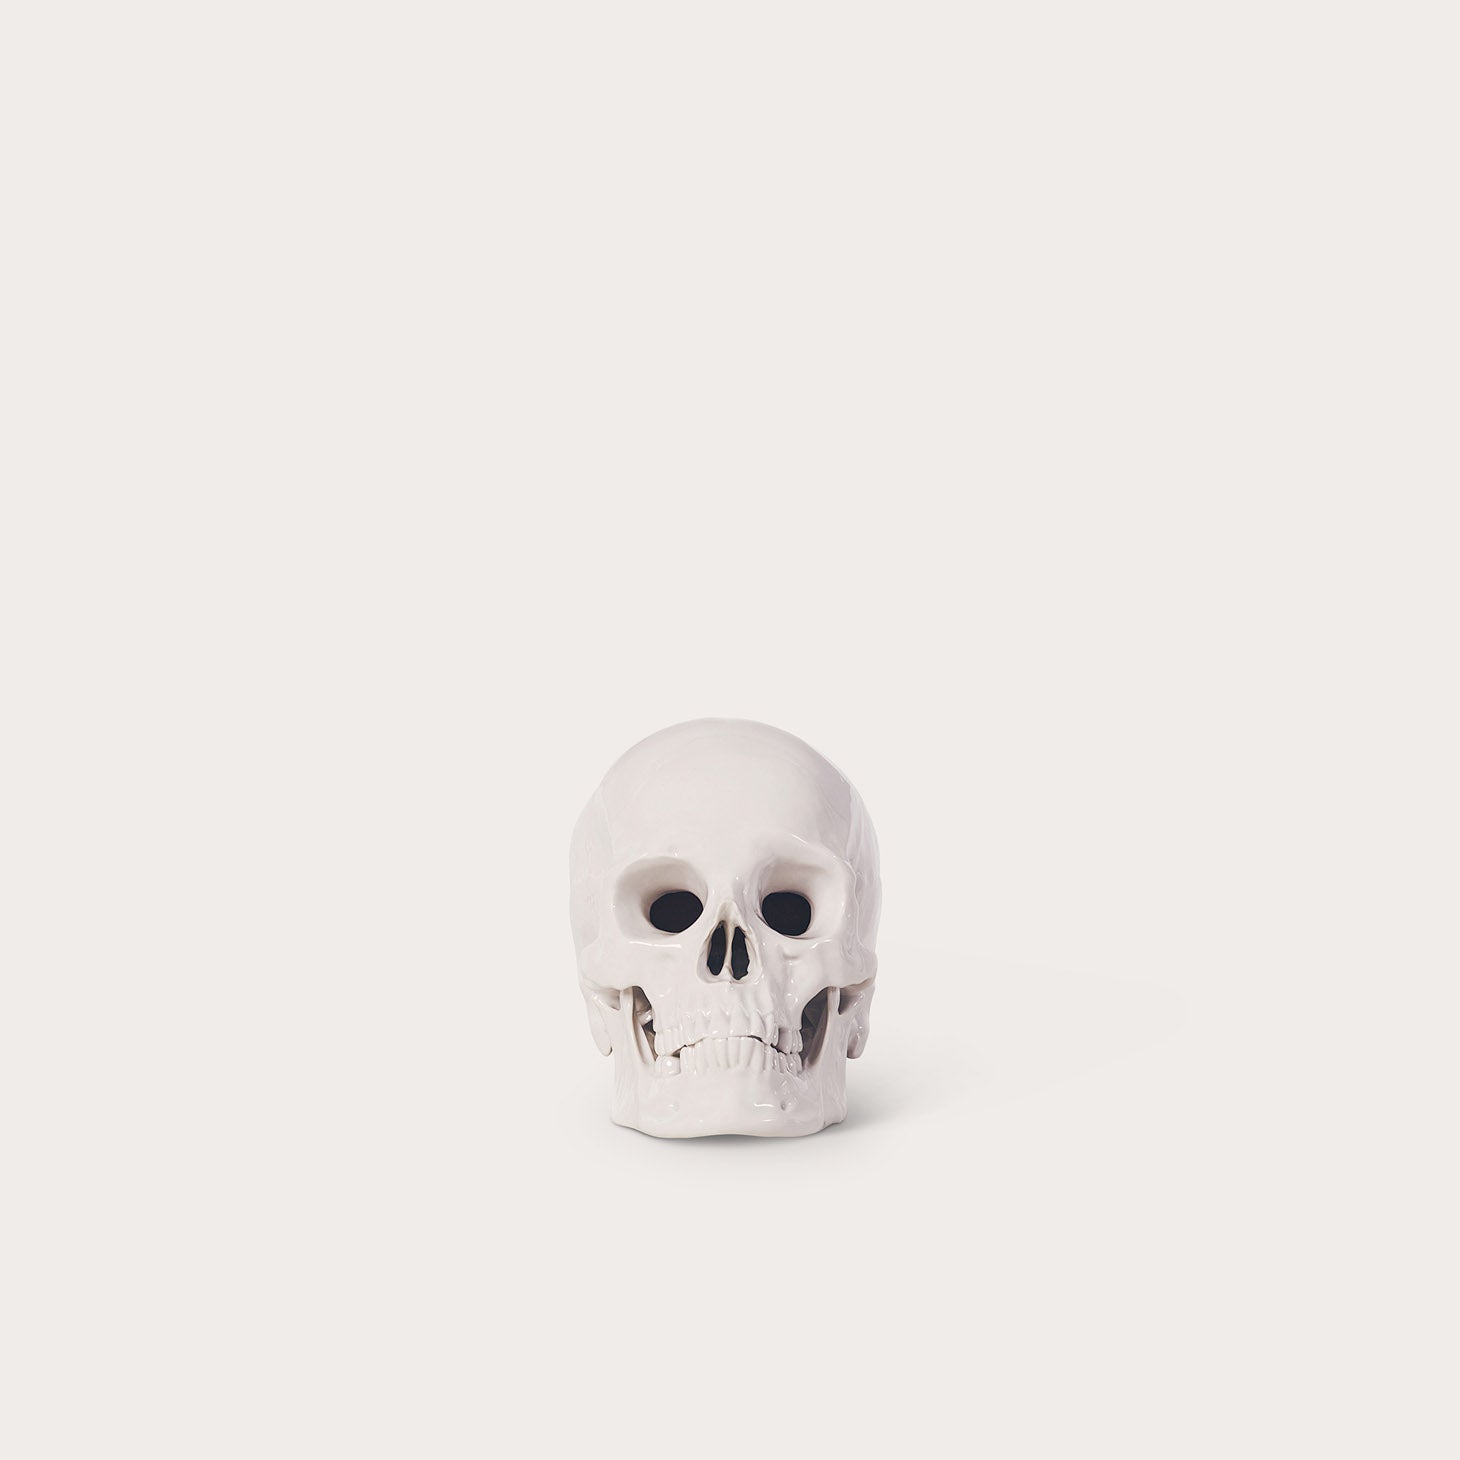 Memento Mori Accessories Nymphenburg Designer Furniture Sku: 542-100-10225